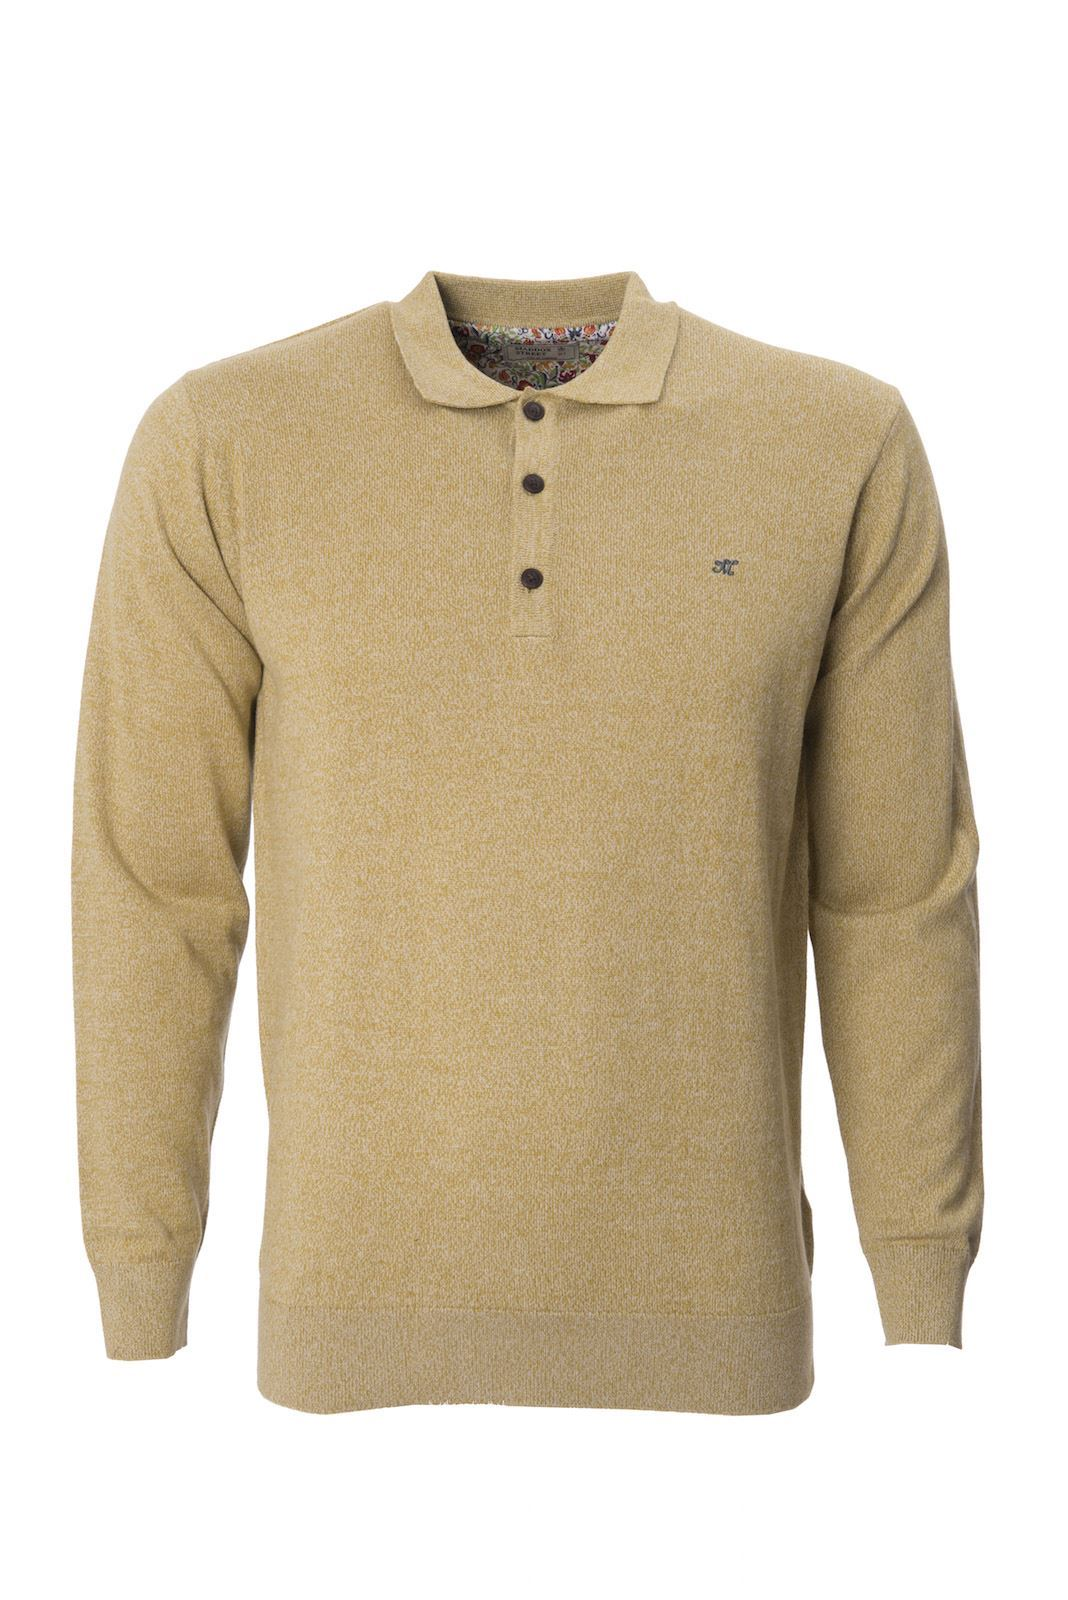 Maddox street mens knitted polo shirt collared long sleeve for Knitted polo shirt mens